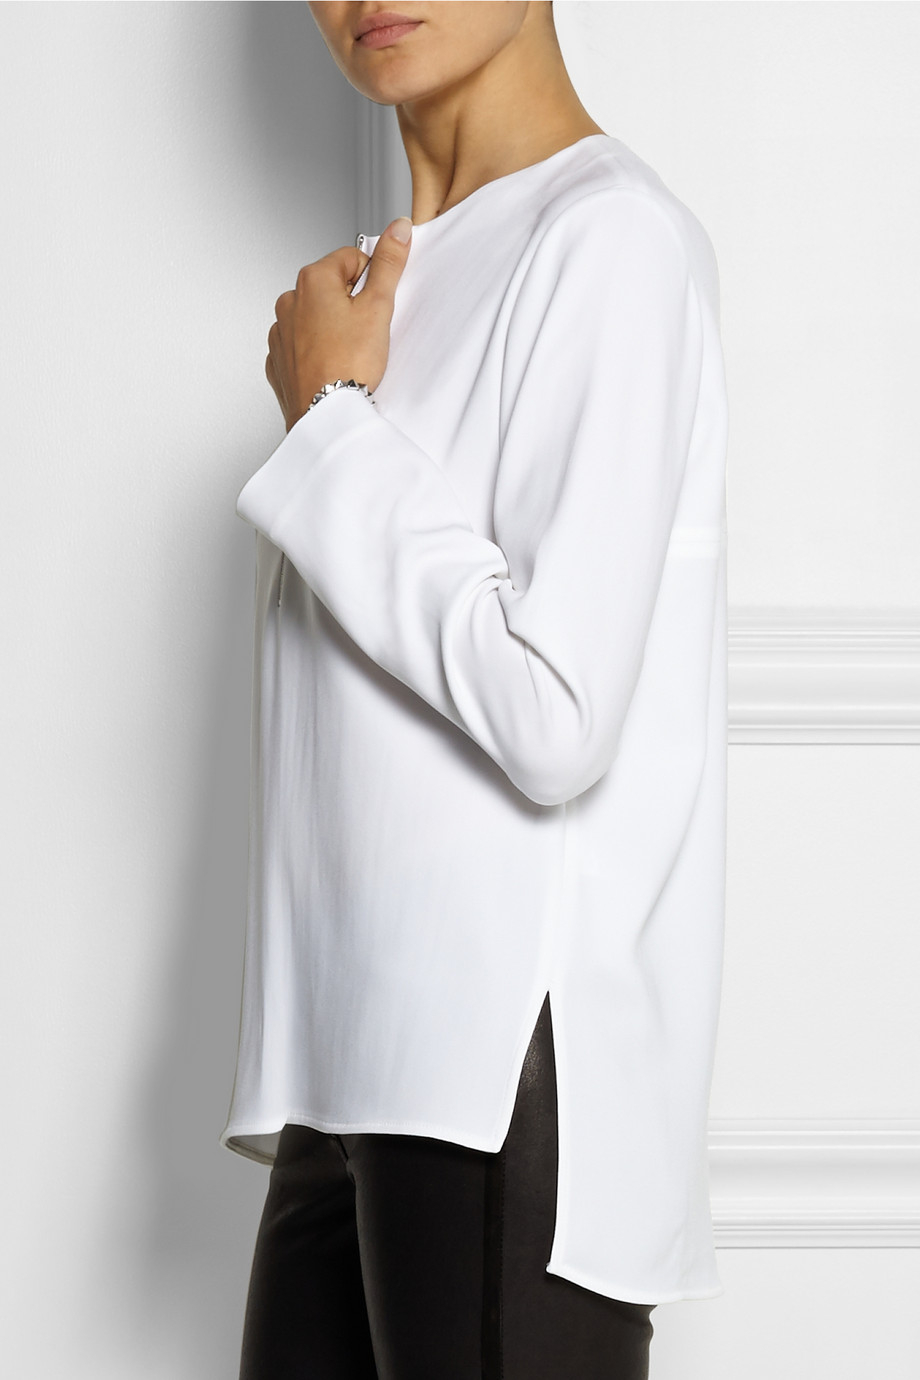 Crêpe top Stella McCartney From China Sale Online Manchester Clearance Best Wholesale Cheap Manchester Great Sale Deals For Sale 4O1PPMlof